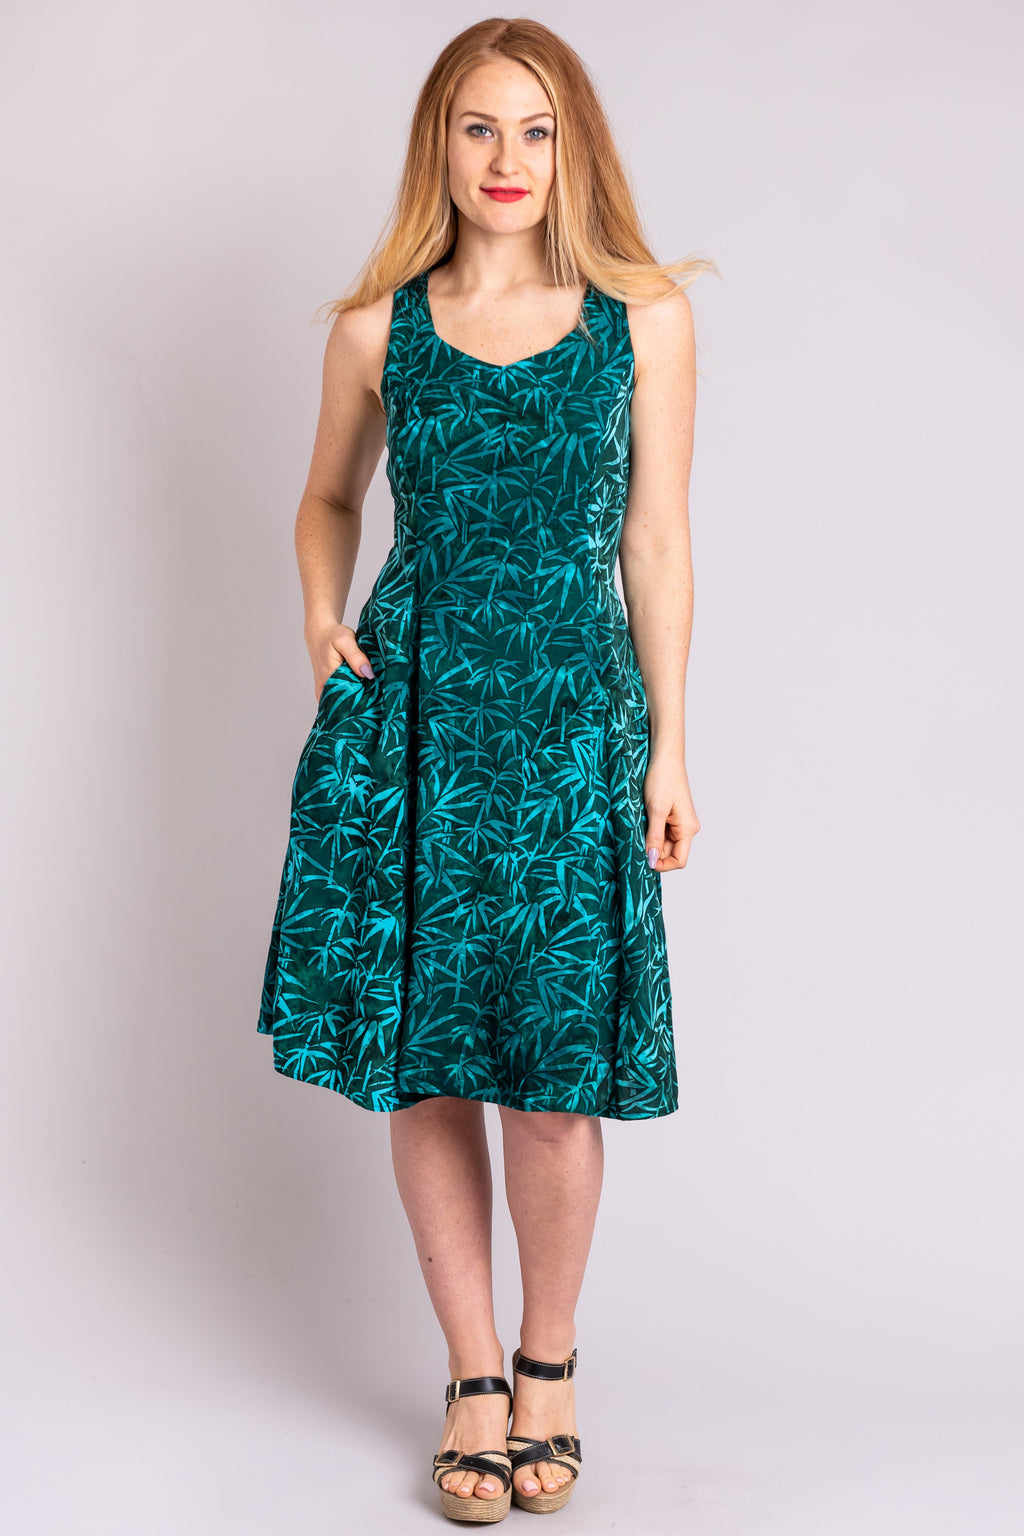 Sweet Sara Dress, Bamboo Forest - Blue Sky Clothing Co